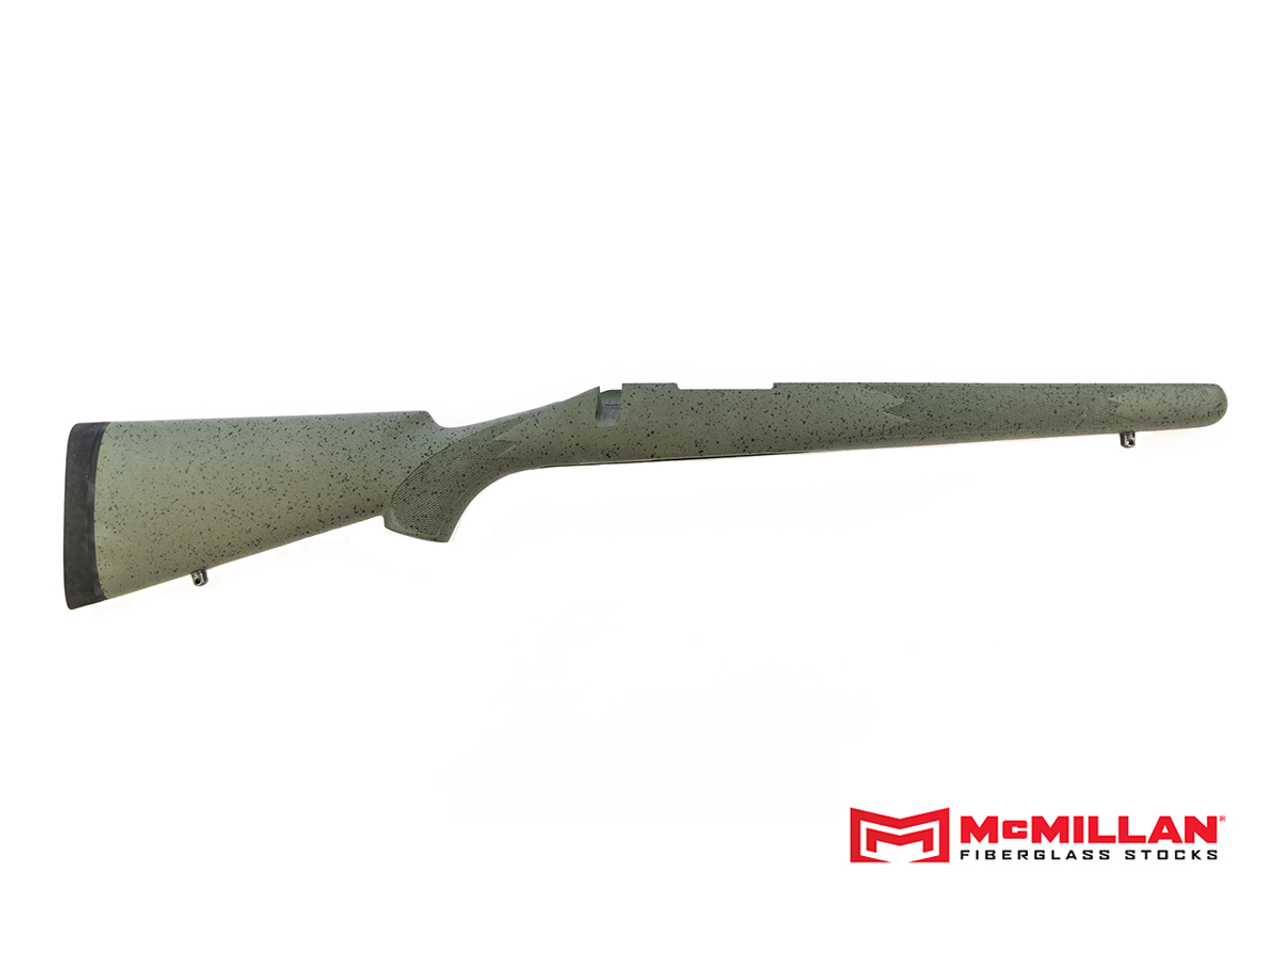 McMillan Hunter's Edge- Remington 700